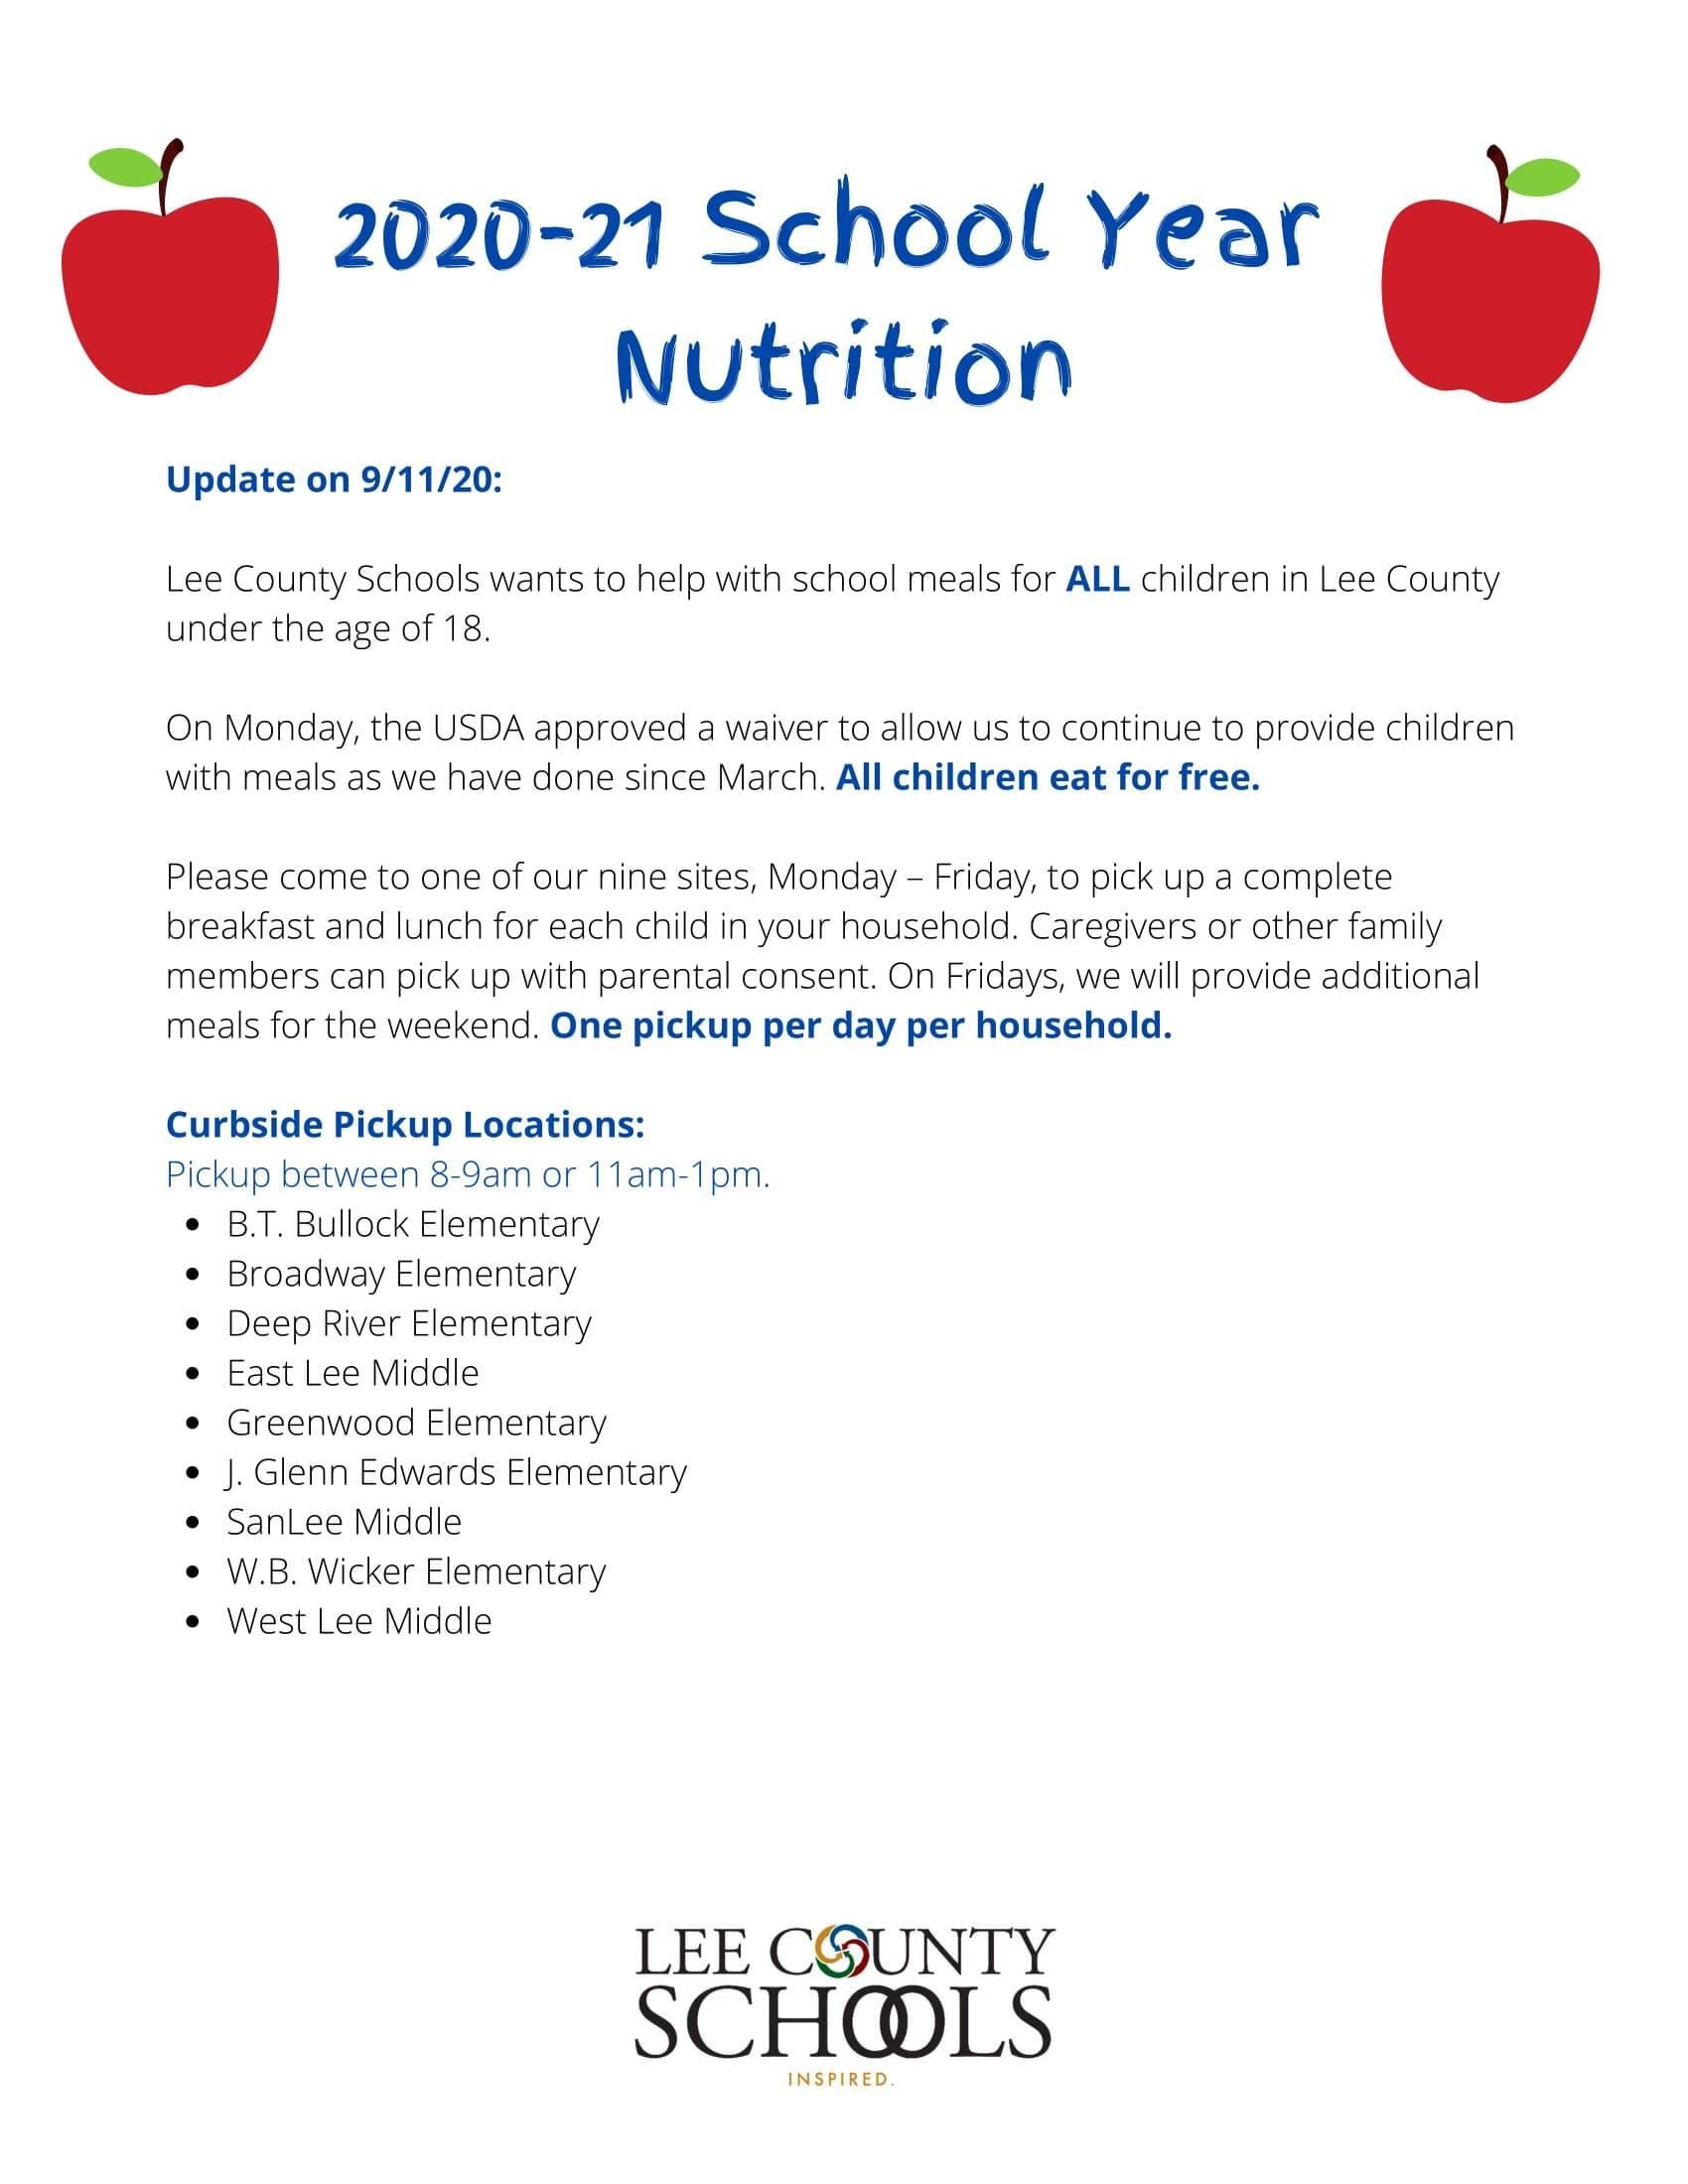 2020-21 School Year Nutrition Update on September 11, 2020.